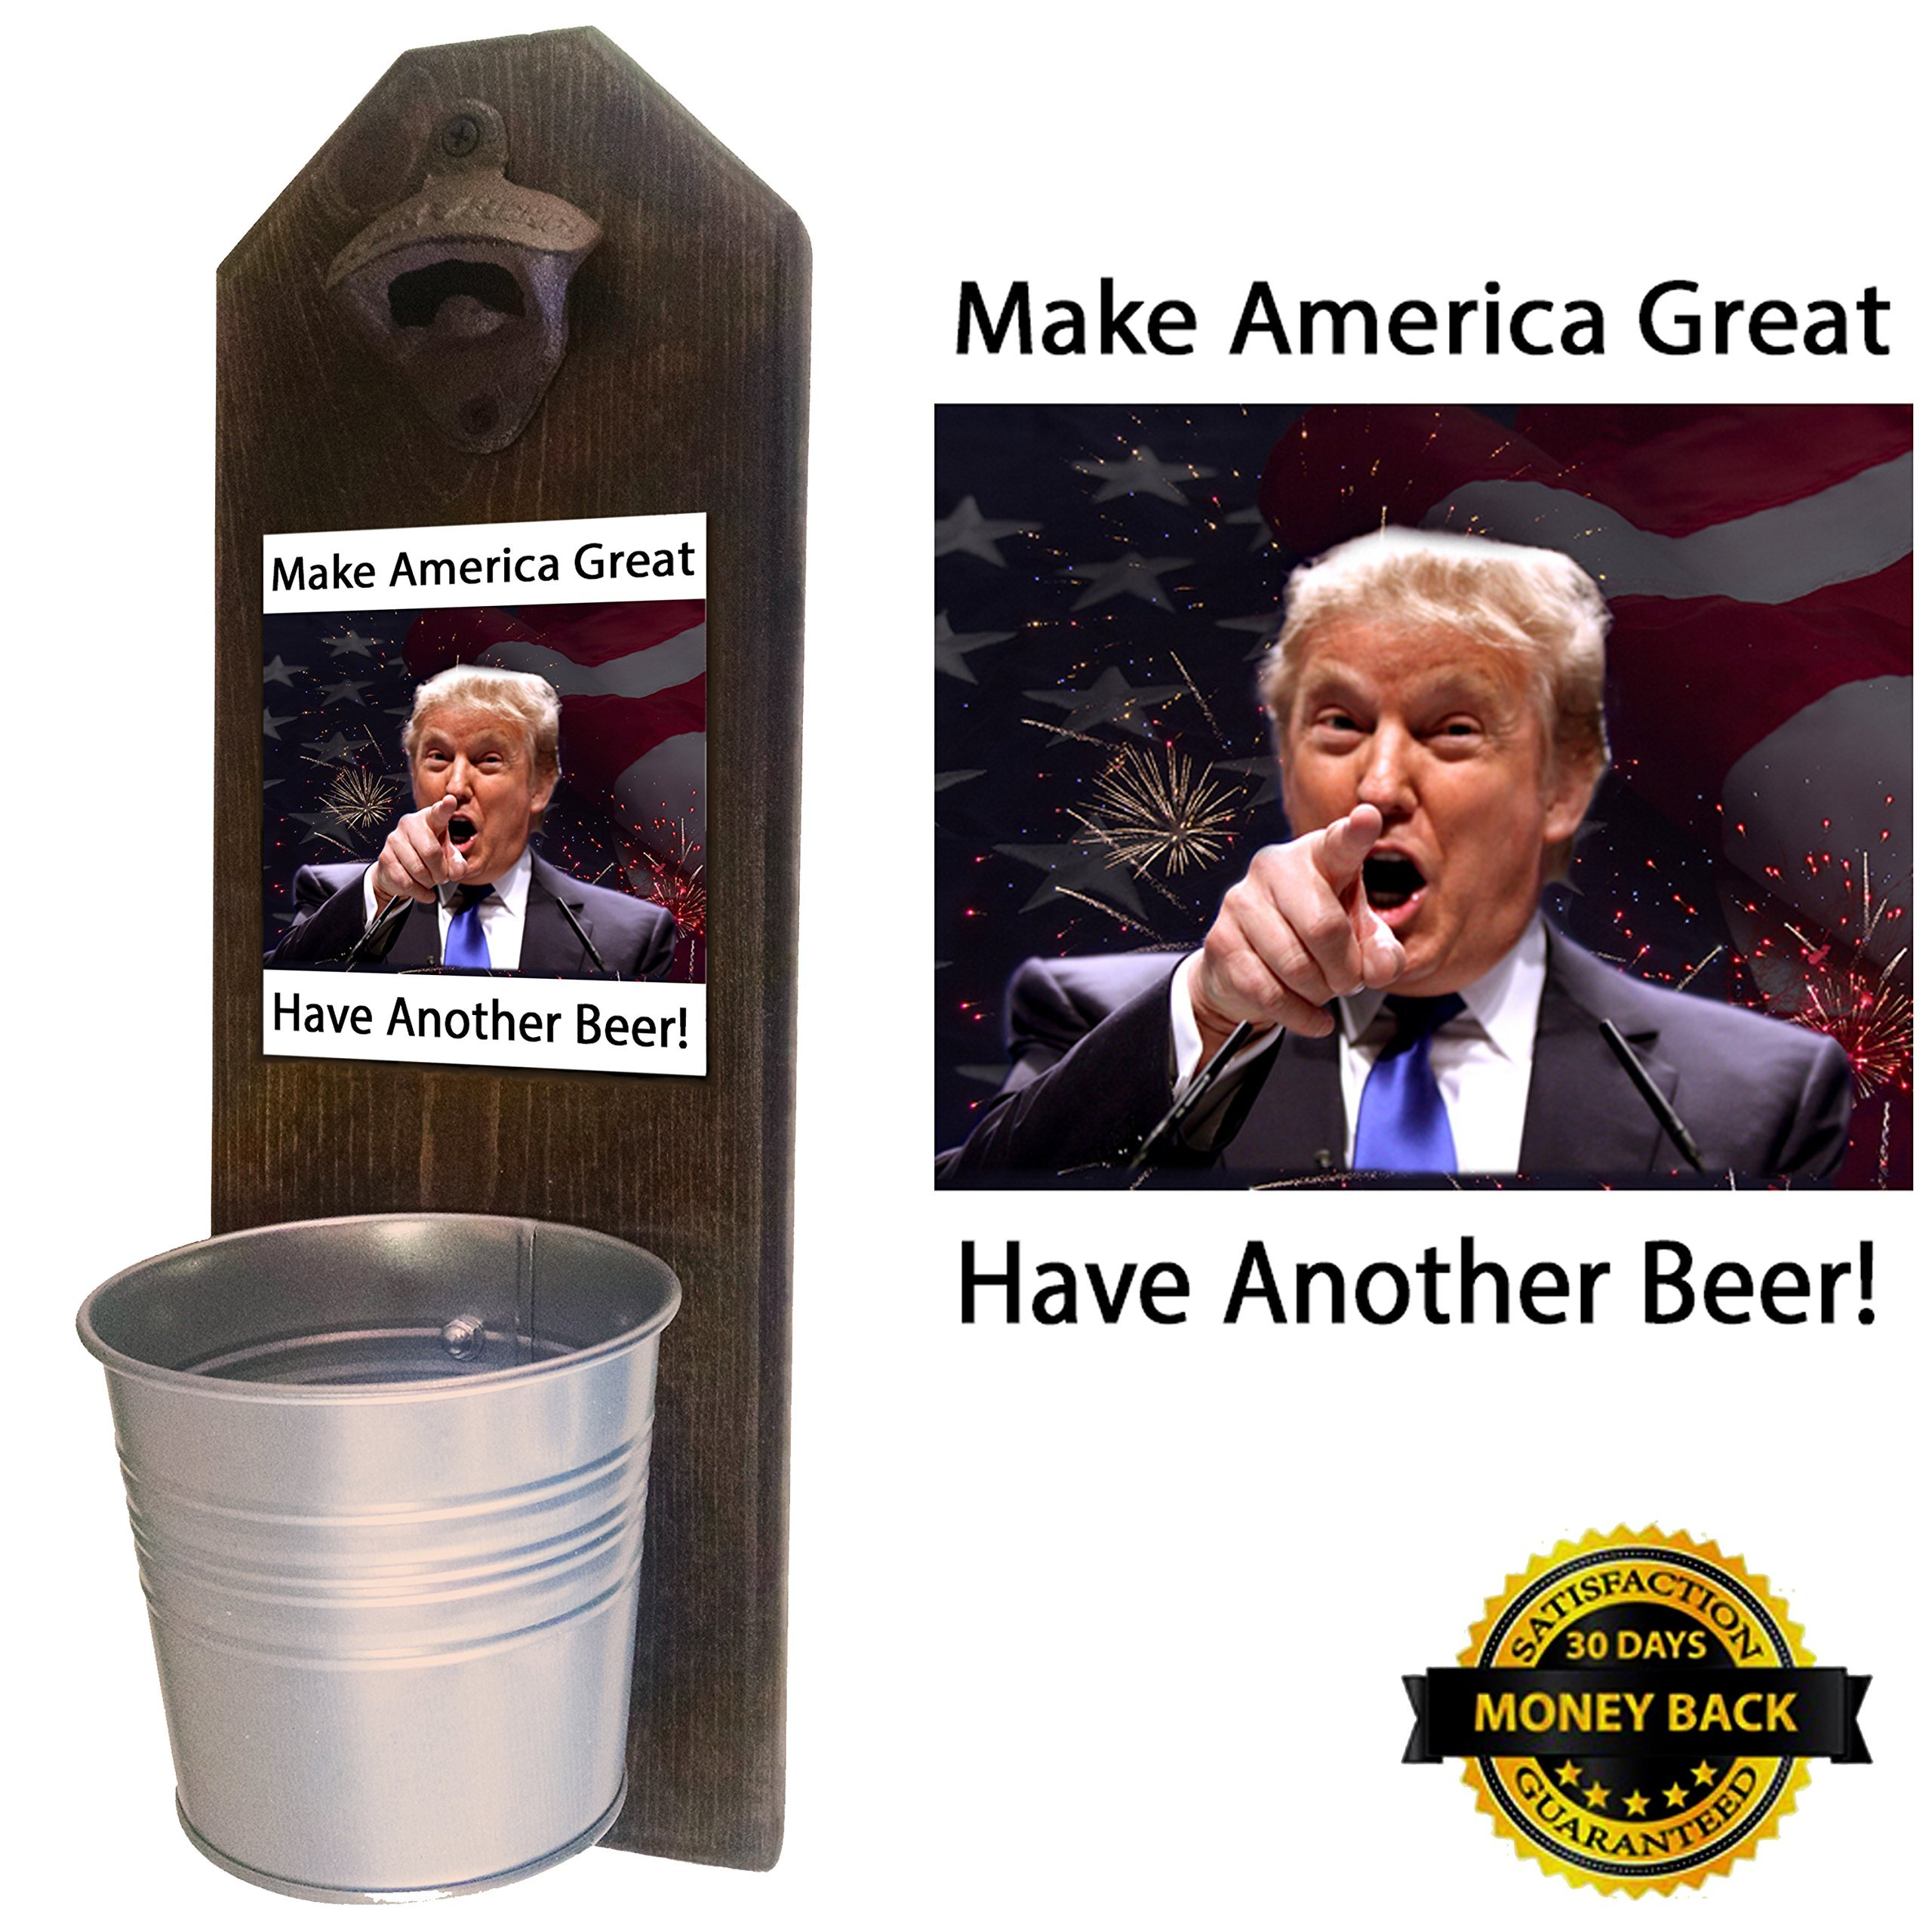 Trump - Make America Great, Have Another Beer - Bottle Opener and Cap Catcher. Handcrafted by a Vet. Solid Pine. Rustic cast iron bottle opener and galvanized bucket. Also a great Trump Hat Holder!